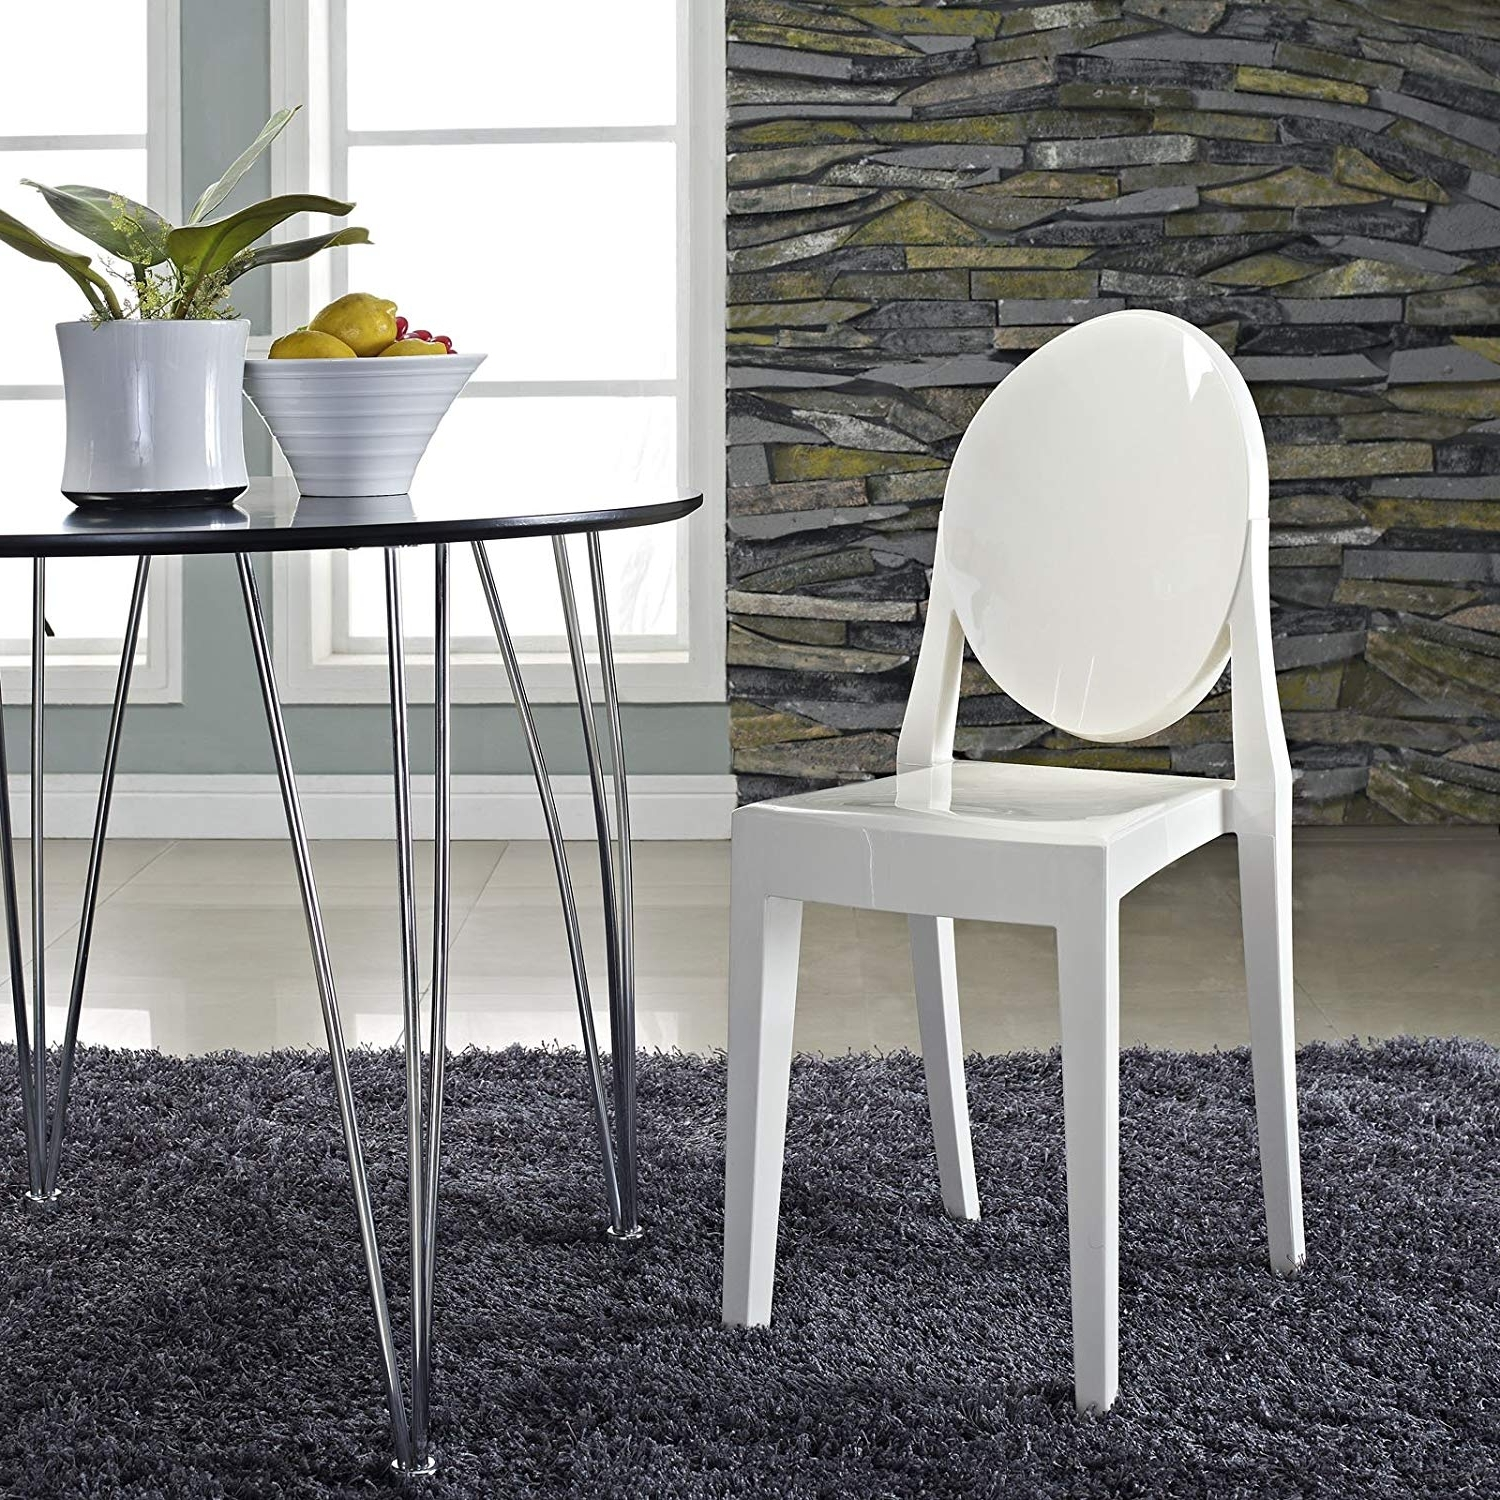 Best And Newest Amazon – Modway Casper Modern Acrylic Dining Side Chair In White In Mandy Paper White Side Chairs (View 7 of 20)